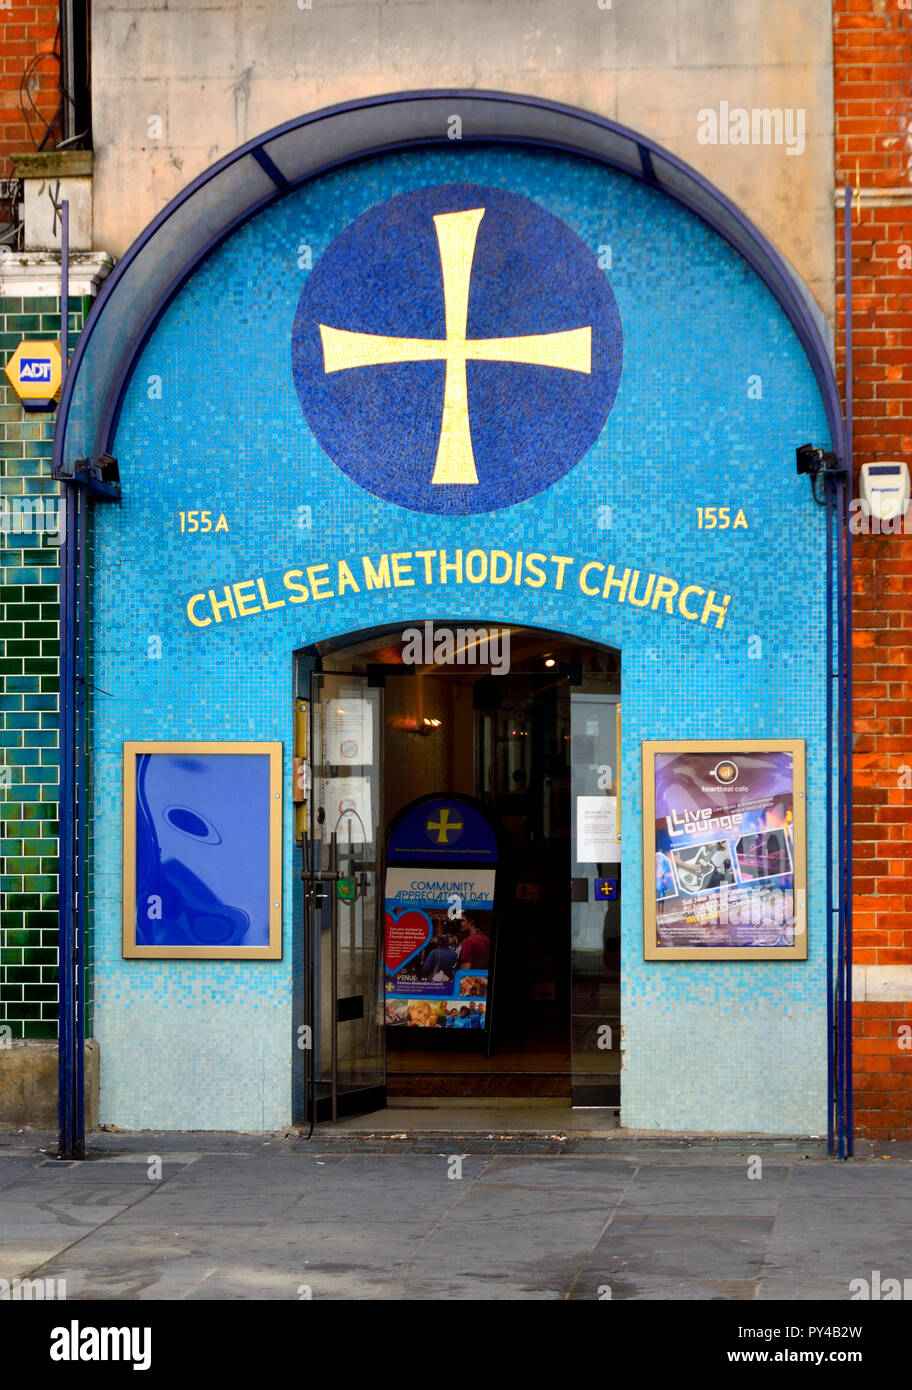 Chelsea Methodist Church and Pastoral Centre, King's Road, London, England, UK. - Stock Image